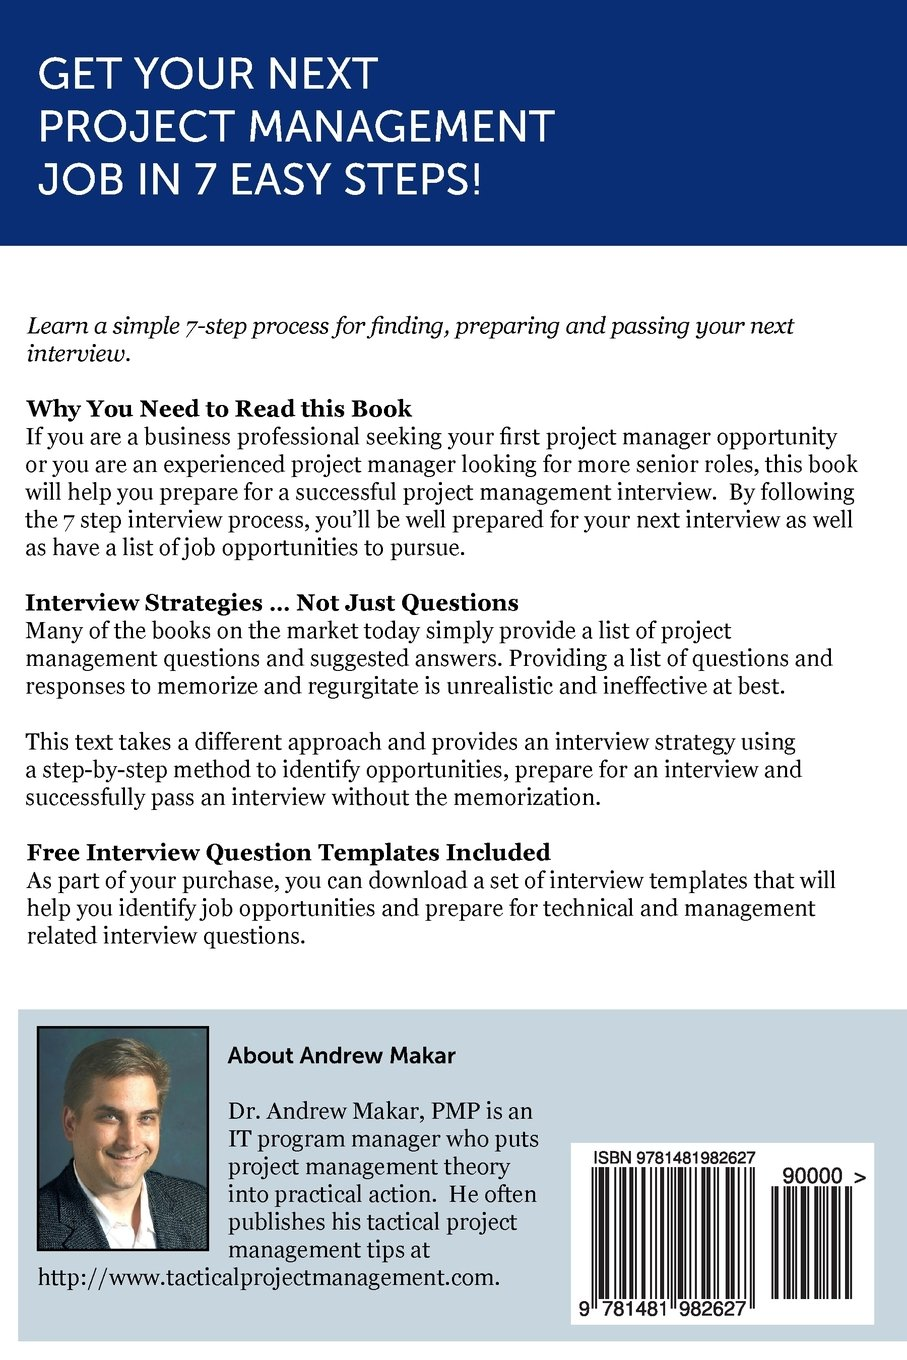 project management interview questions made easy for successful project management interview questions made easy for successful project management interviews dr andrew j makar 9781481982627 amazon com books